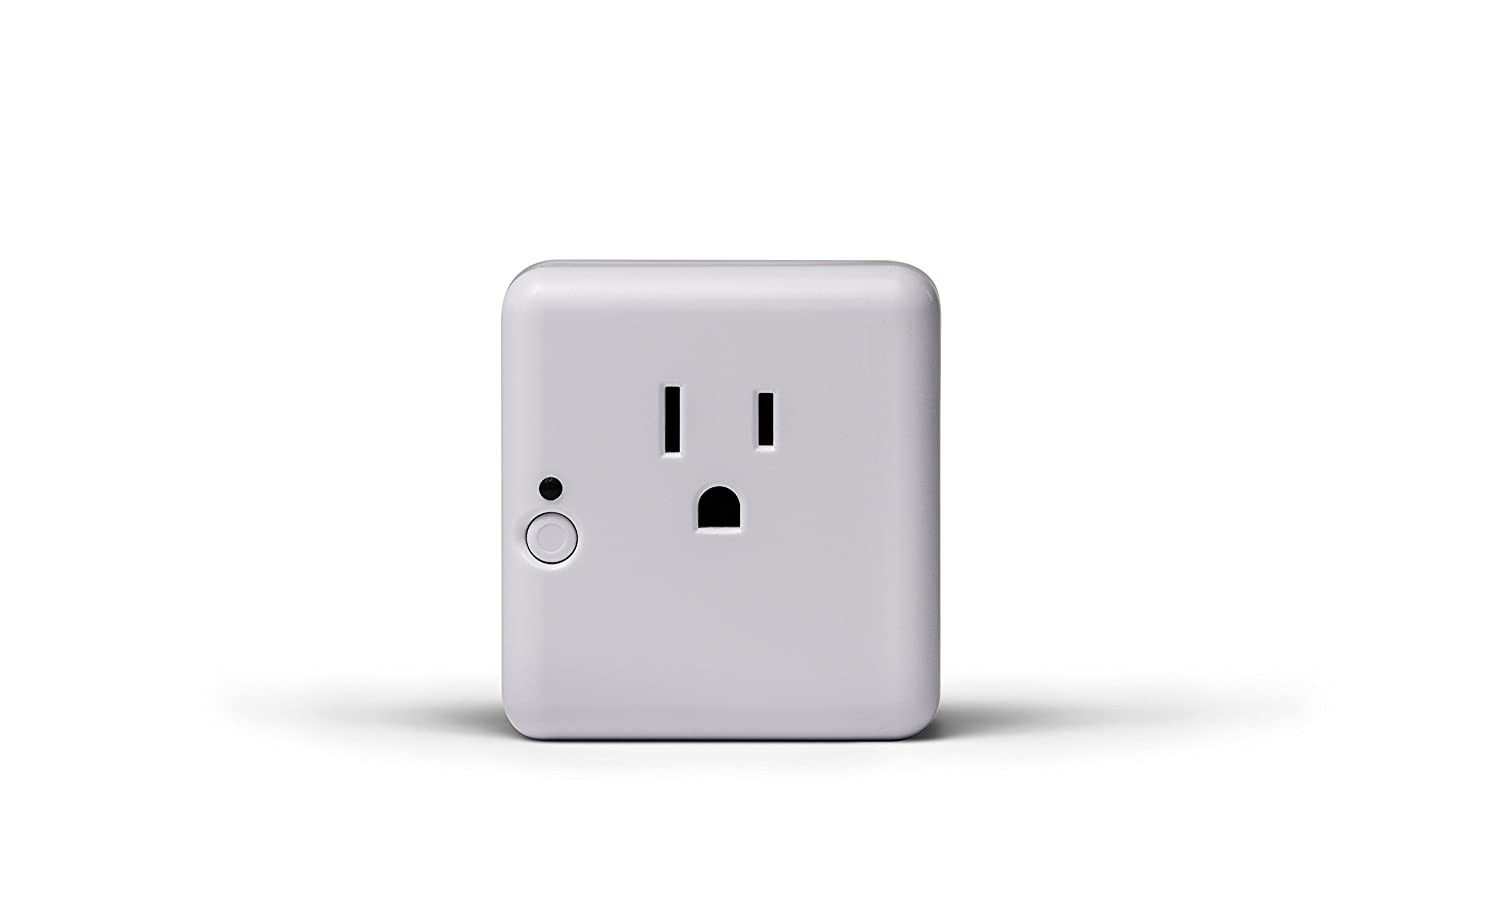 ZigBee wall outlet receptacle - Devices & Integrations - SmartThings ...